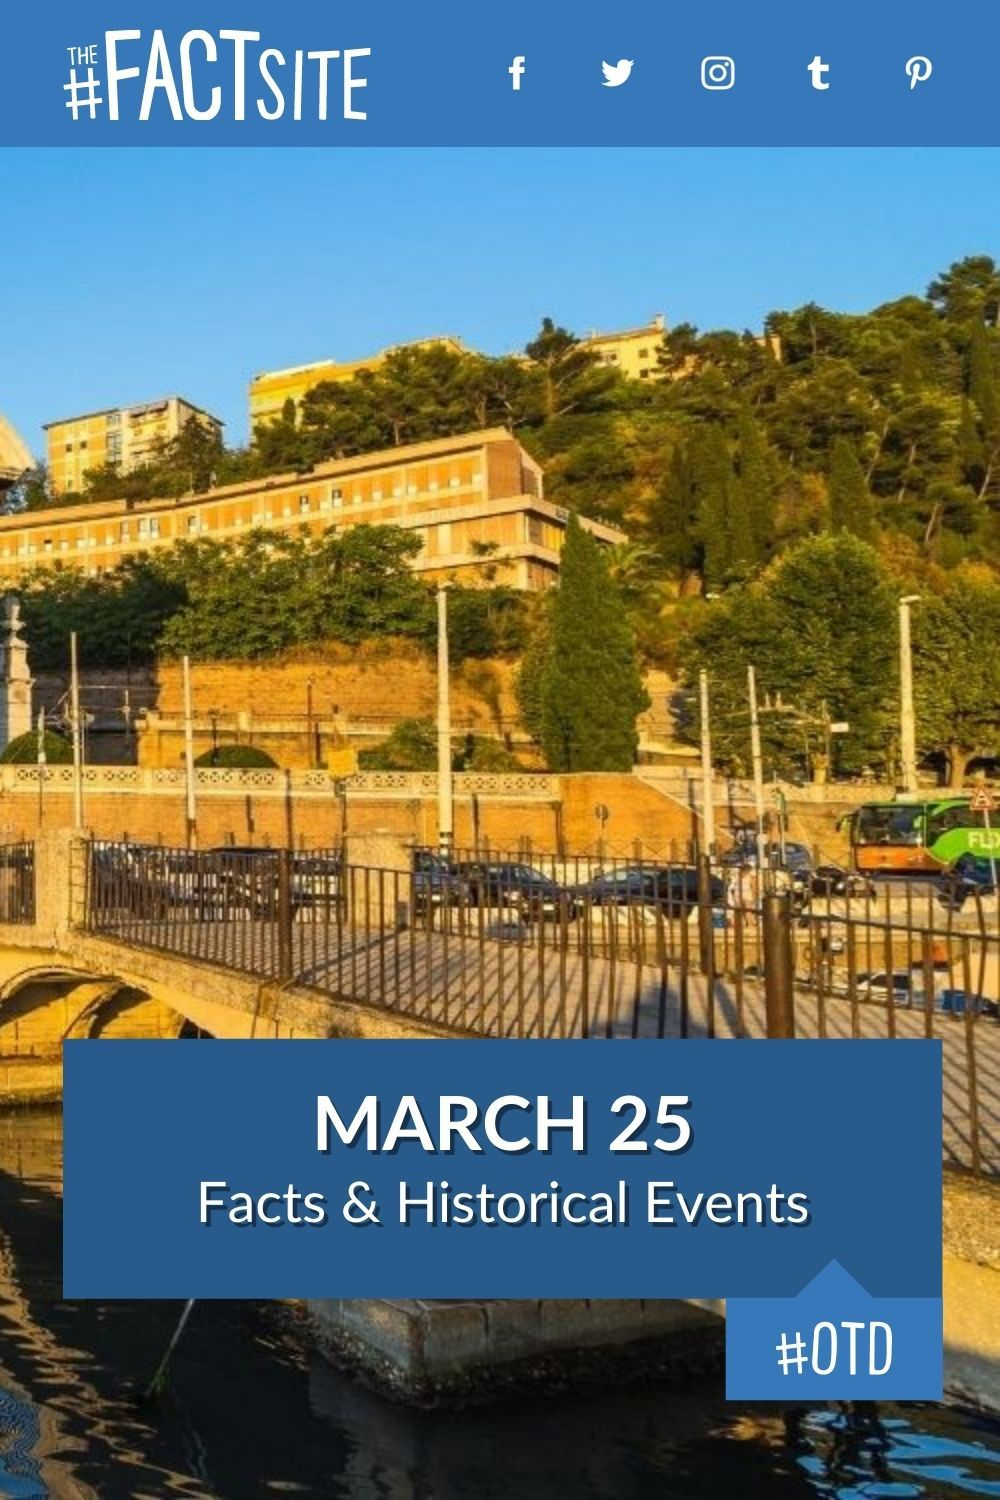 Facts & Historic Events That Happened on March 25